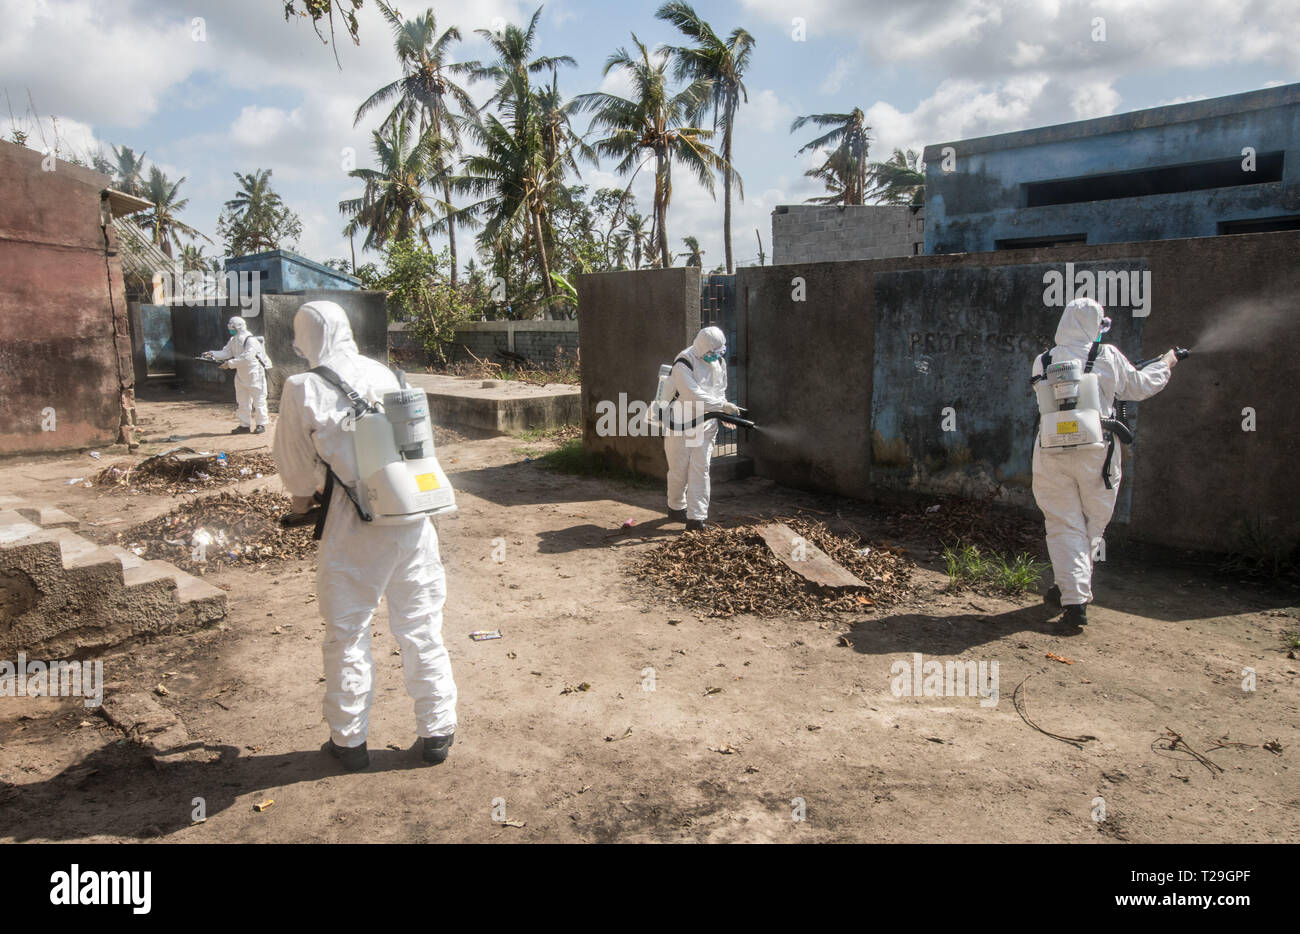 Beira, Mozambique. 29th Mar, 2019. Members of the Chinese rescue team spray disinfectants at Amilcar Cabral Elementary School, a temporary shelter for victims of the Cyclone Idai, in Beira, Mozambique, March 29, 2019. TO GO WITH 'Feature: Chinese rescuers join Mozambicans to prevent epidemics following Idai disaster' Credit: Zhang Yu/Xinhua/Alamy Live News - Stock Image